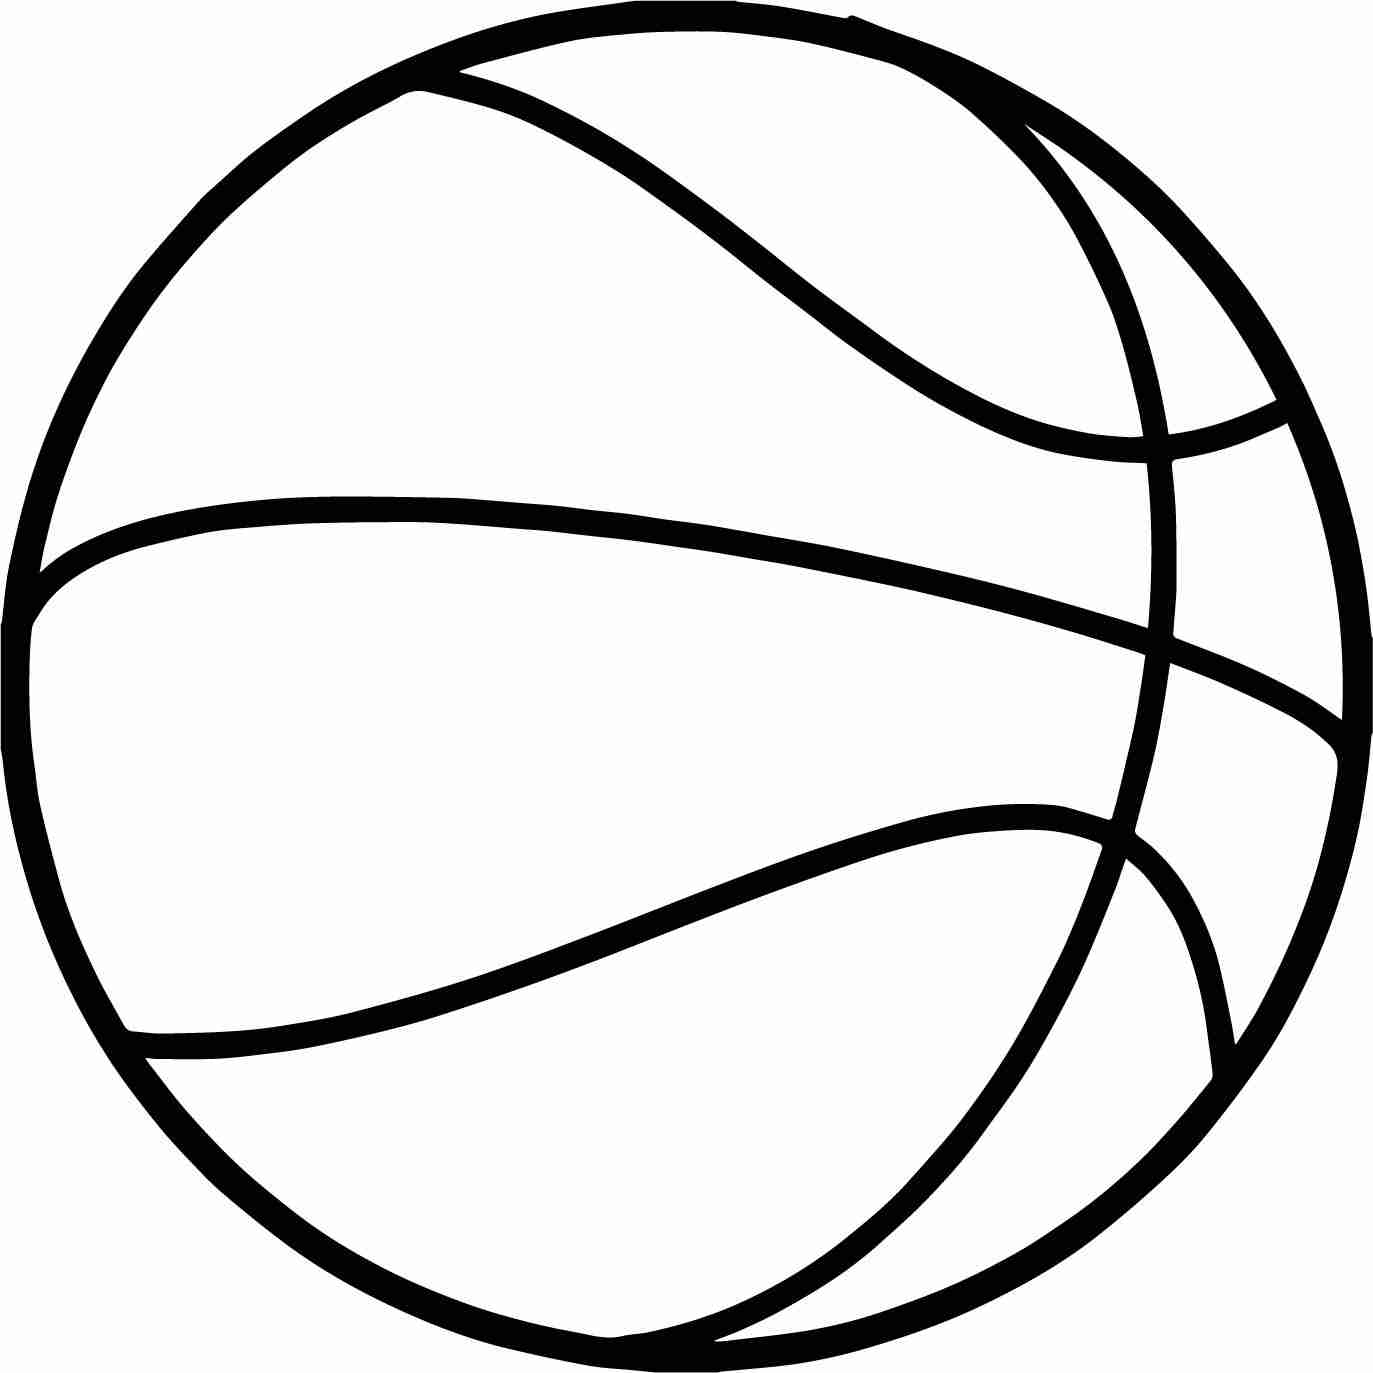 Football Ball Coloring Pages At Getdrawings Free Download